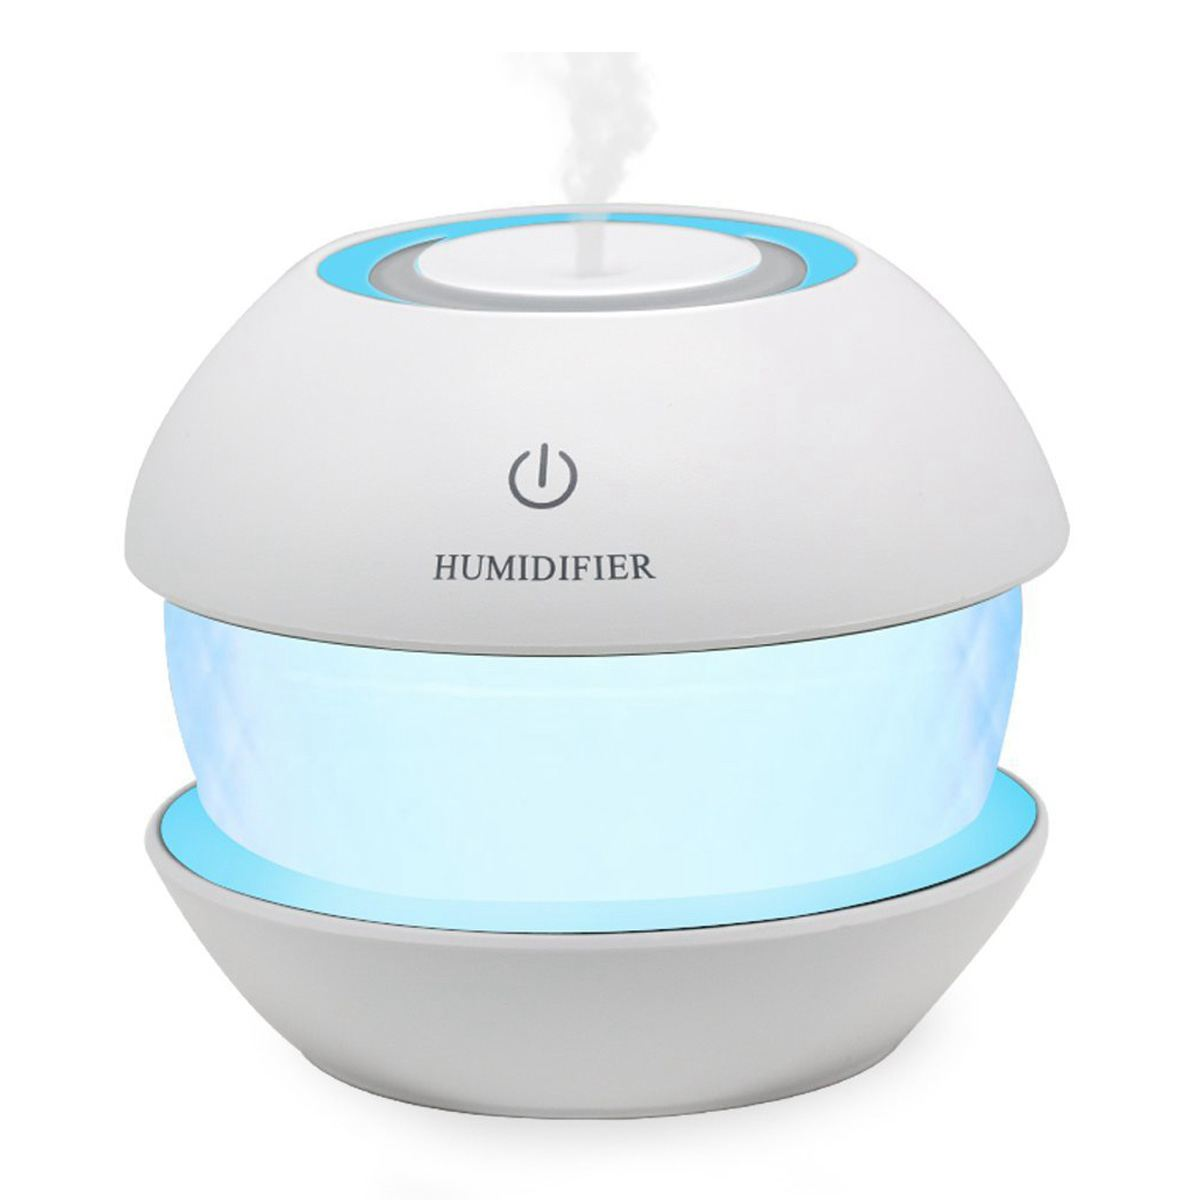 150ml Ultrasonic Mist Diffuser Small Air Humidifiers USB Charge /Touch Switch /Whisper-quiet /7 Color Night Light Home Car Baby baby touch car